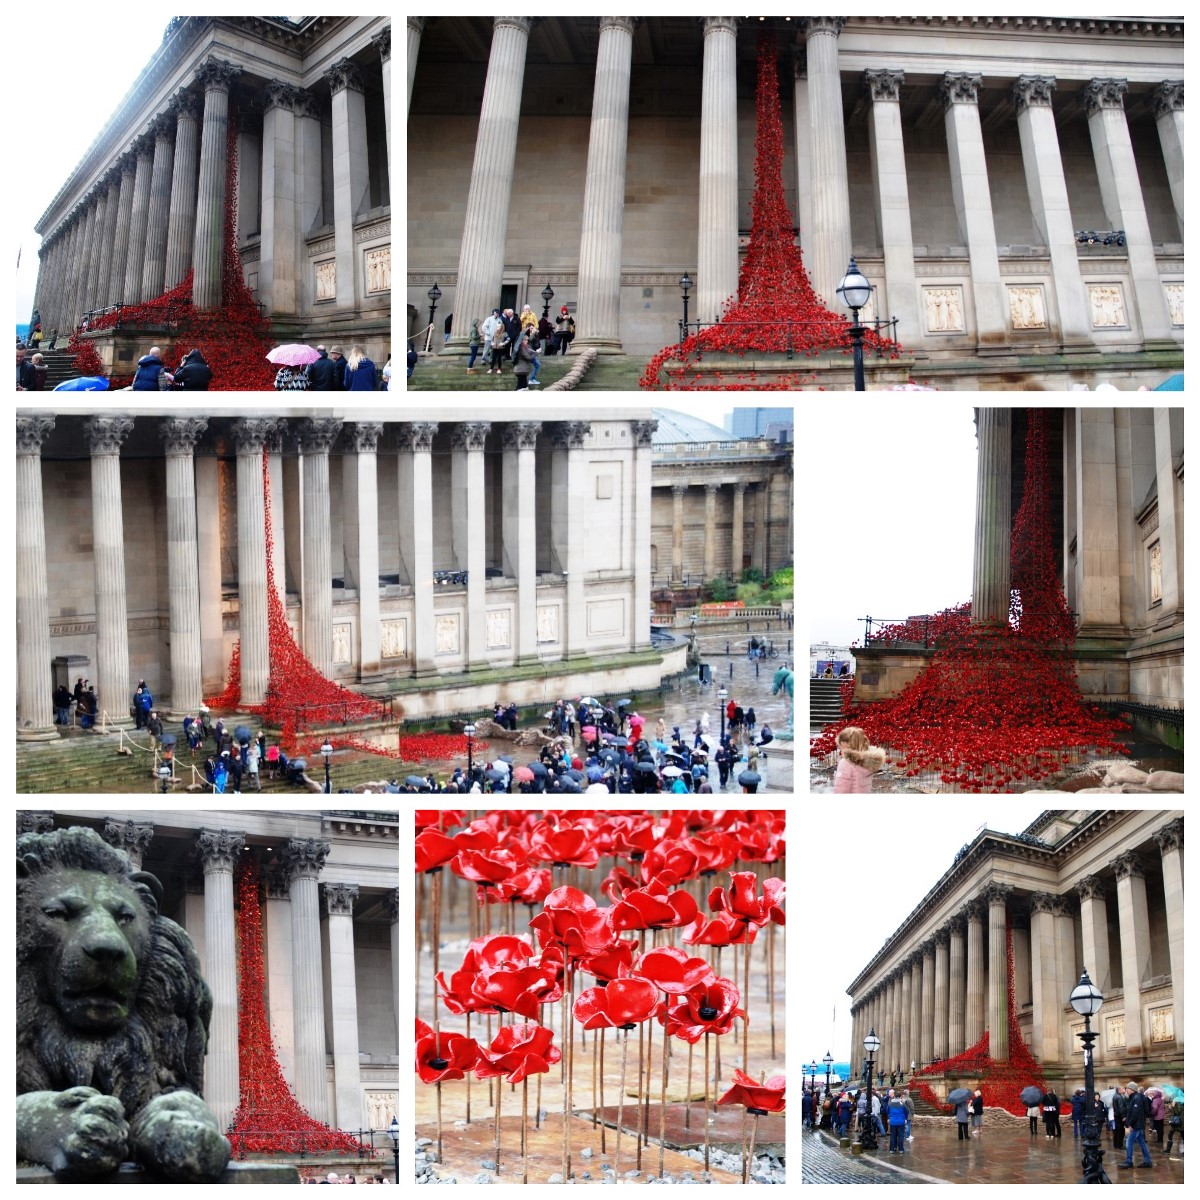 'Weeping Window' poppies display in Liverpool. Pics by Ryan Jones © JMU Journalism